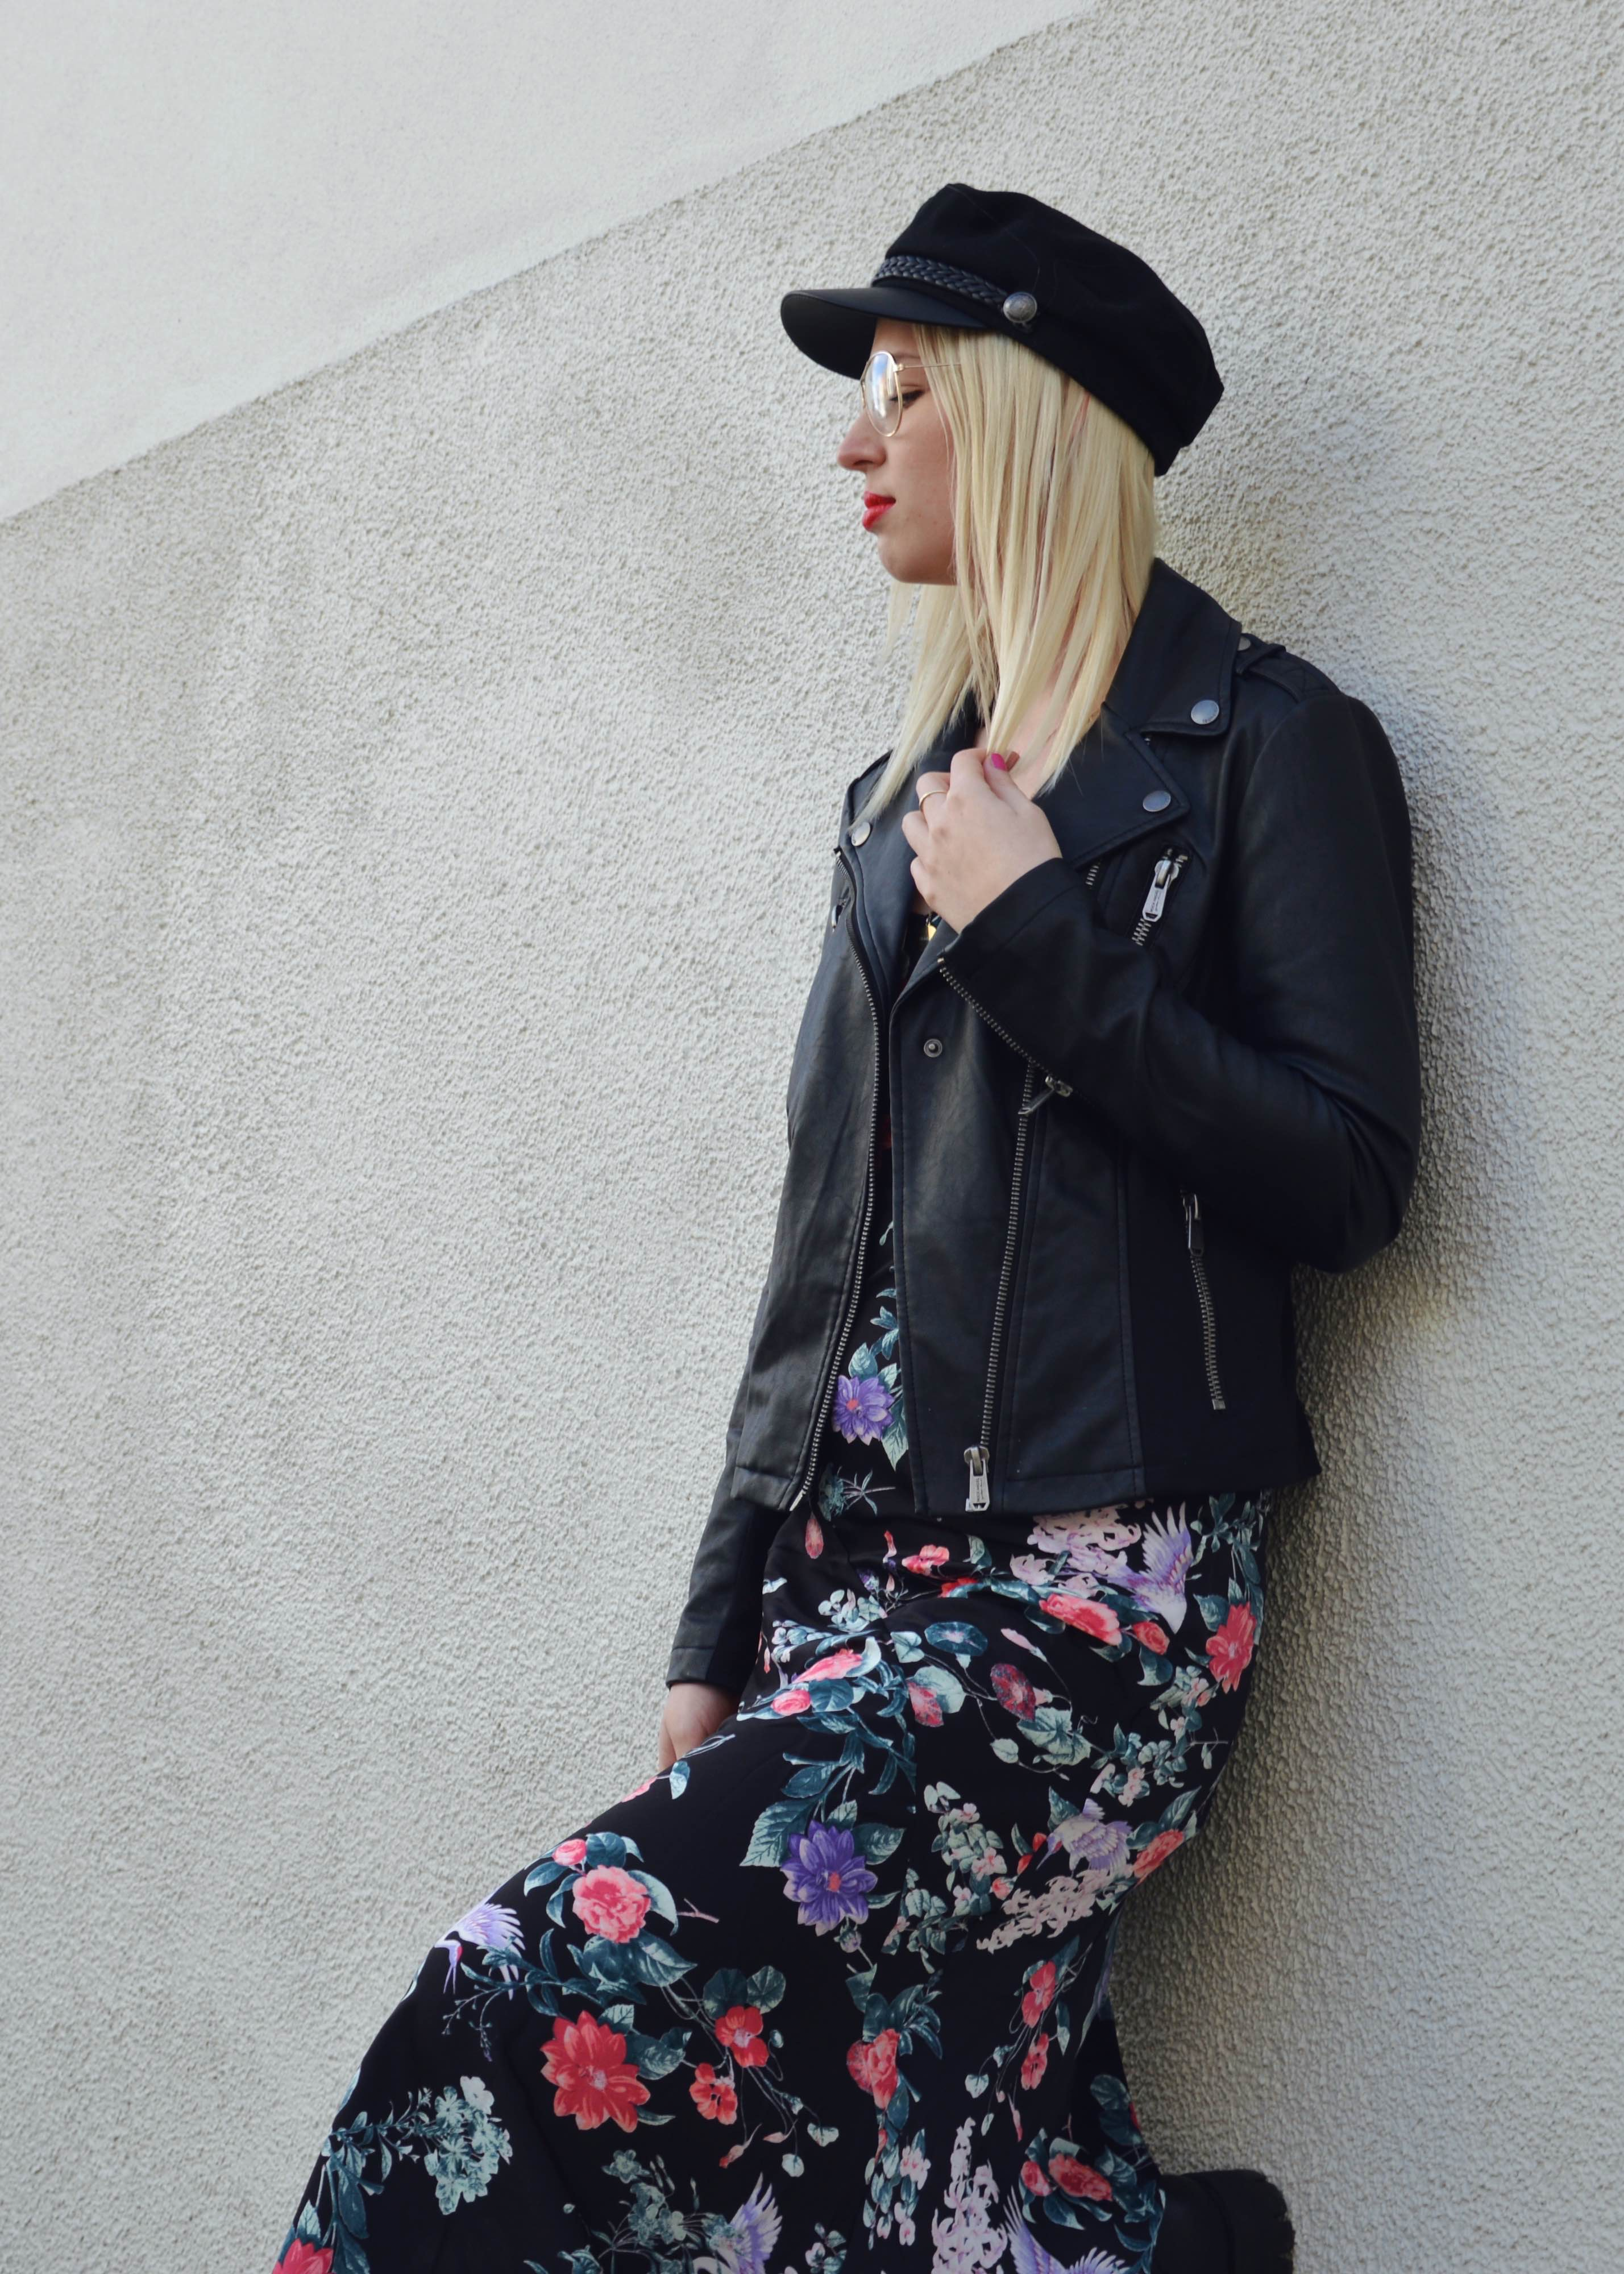 Flowerdress and Bikerjacket17